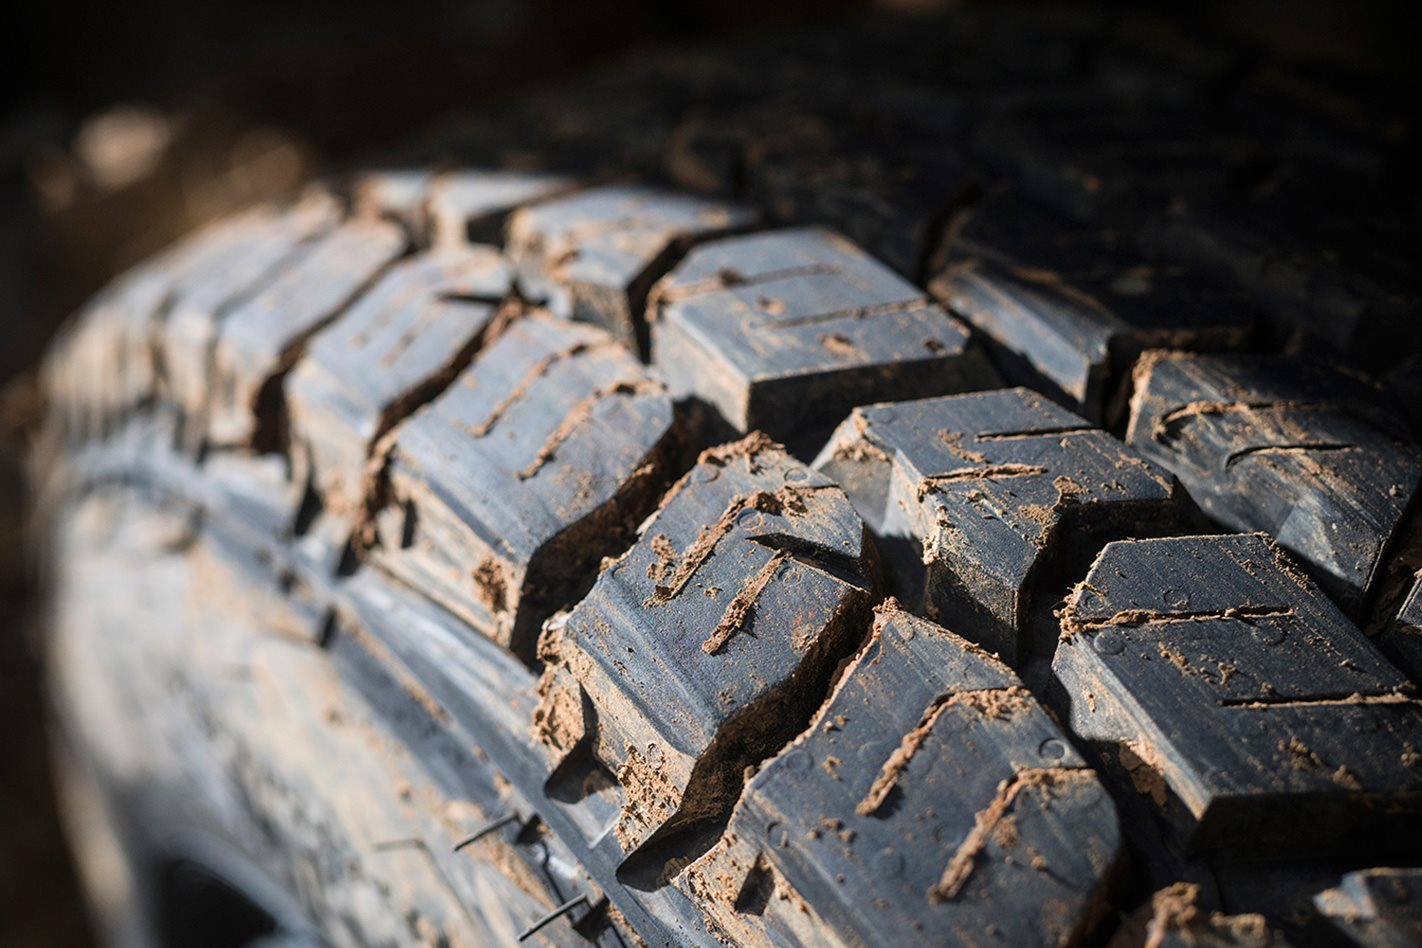 Mickey-Thompson-Deegan-38-Tyres-tread.jpg